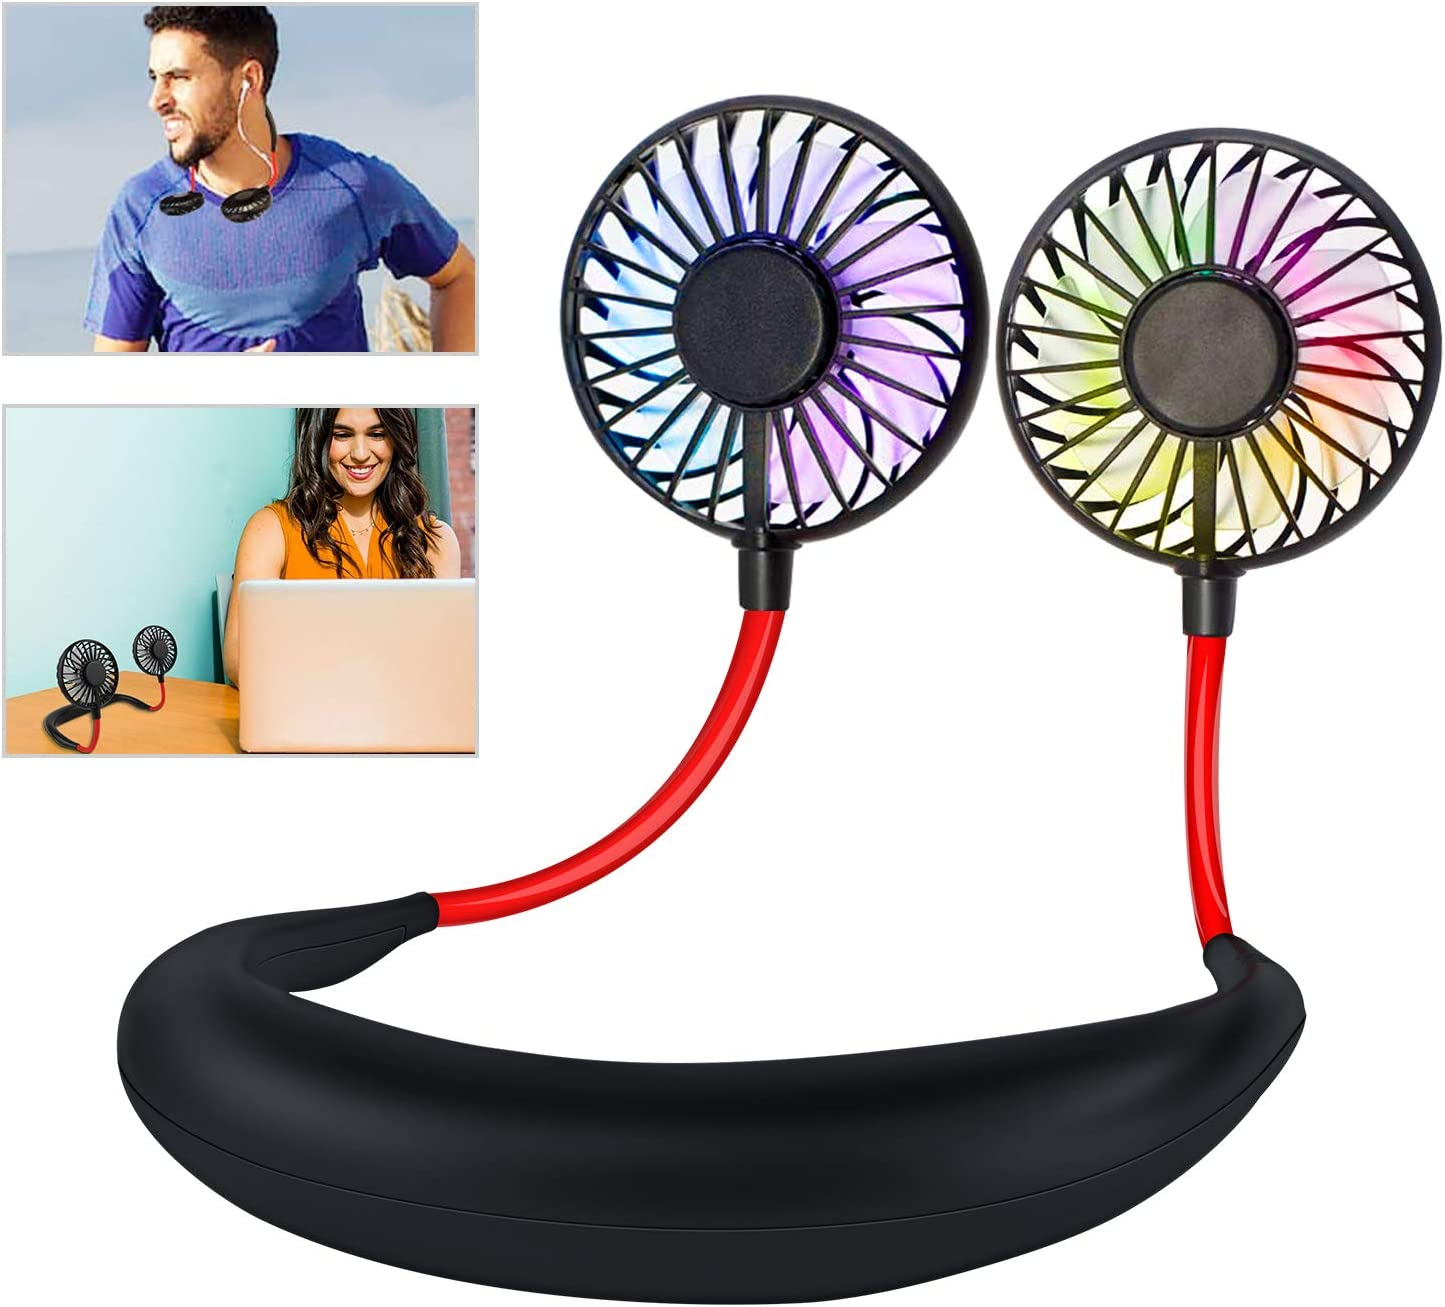 Leipple Neck Fan Portable- Neckband Fan USB Charging Hand Free – Personal Mini Sport Fan – Rechargeable with 3 Speeds Adjustable and LED Light for Sports Travel Outdoor Office Reading